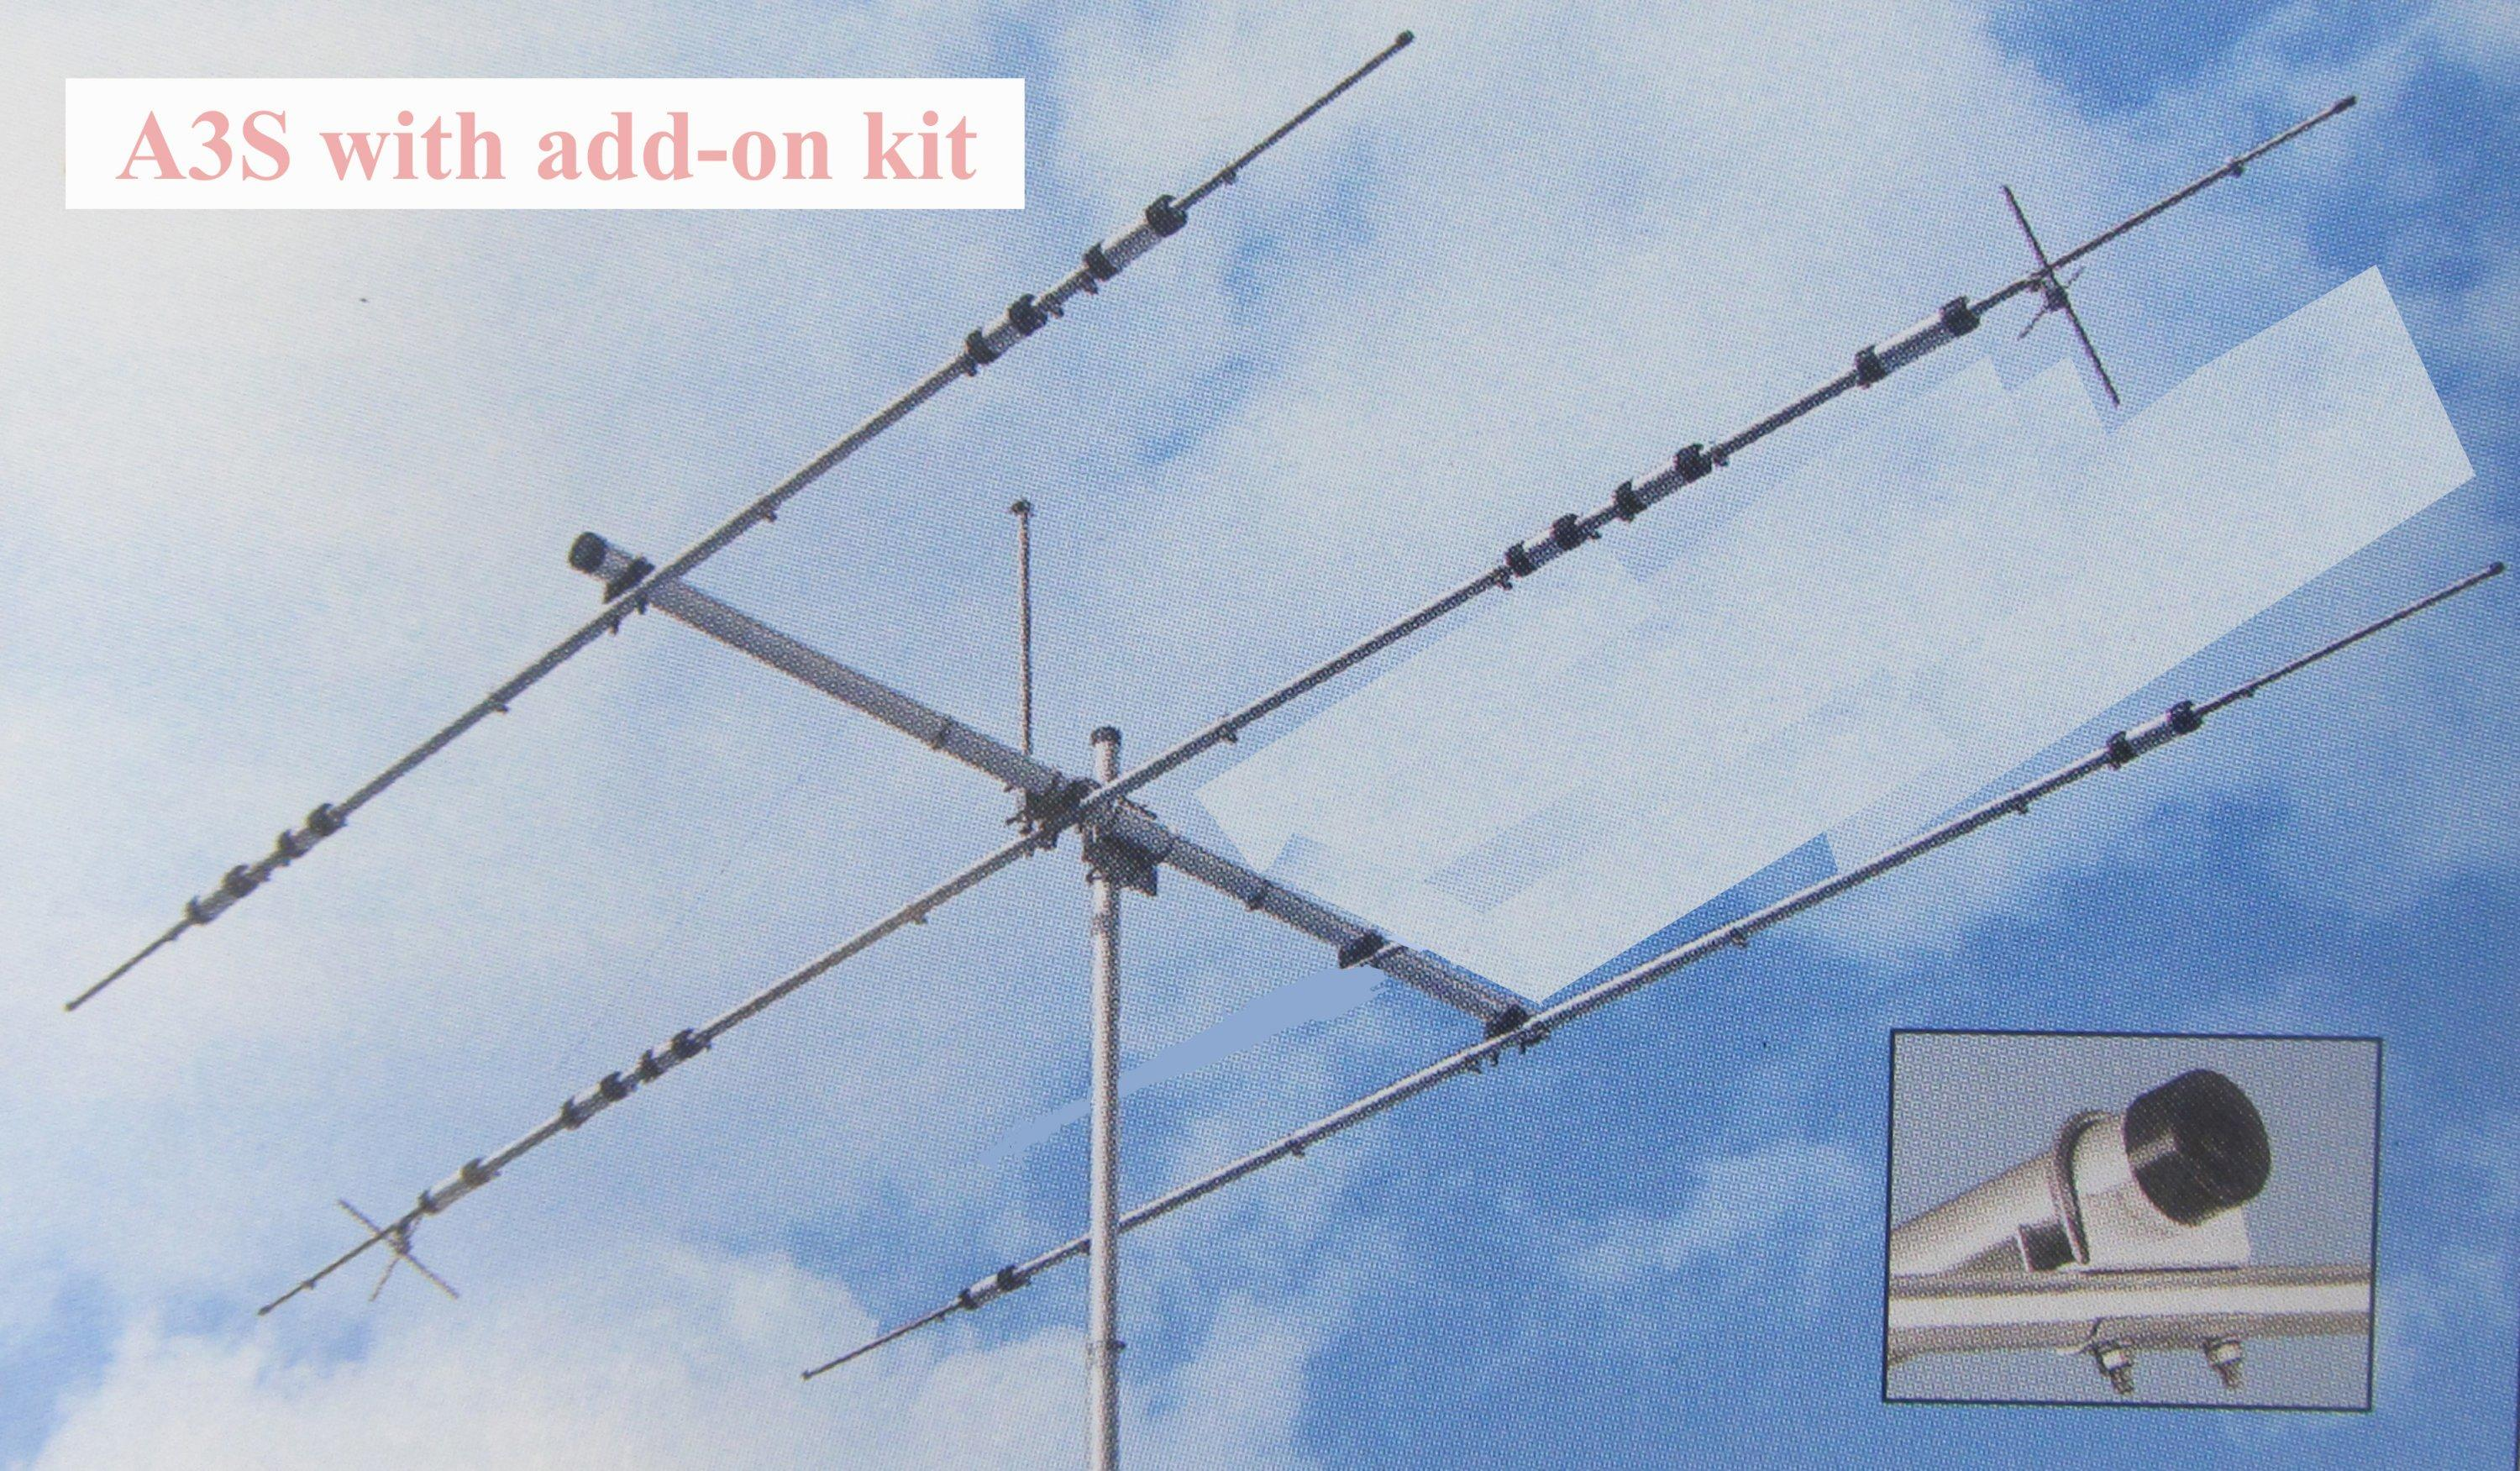 Cushcraft A-743 7/10MHz Add-on Kit for A3S